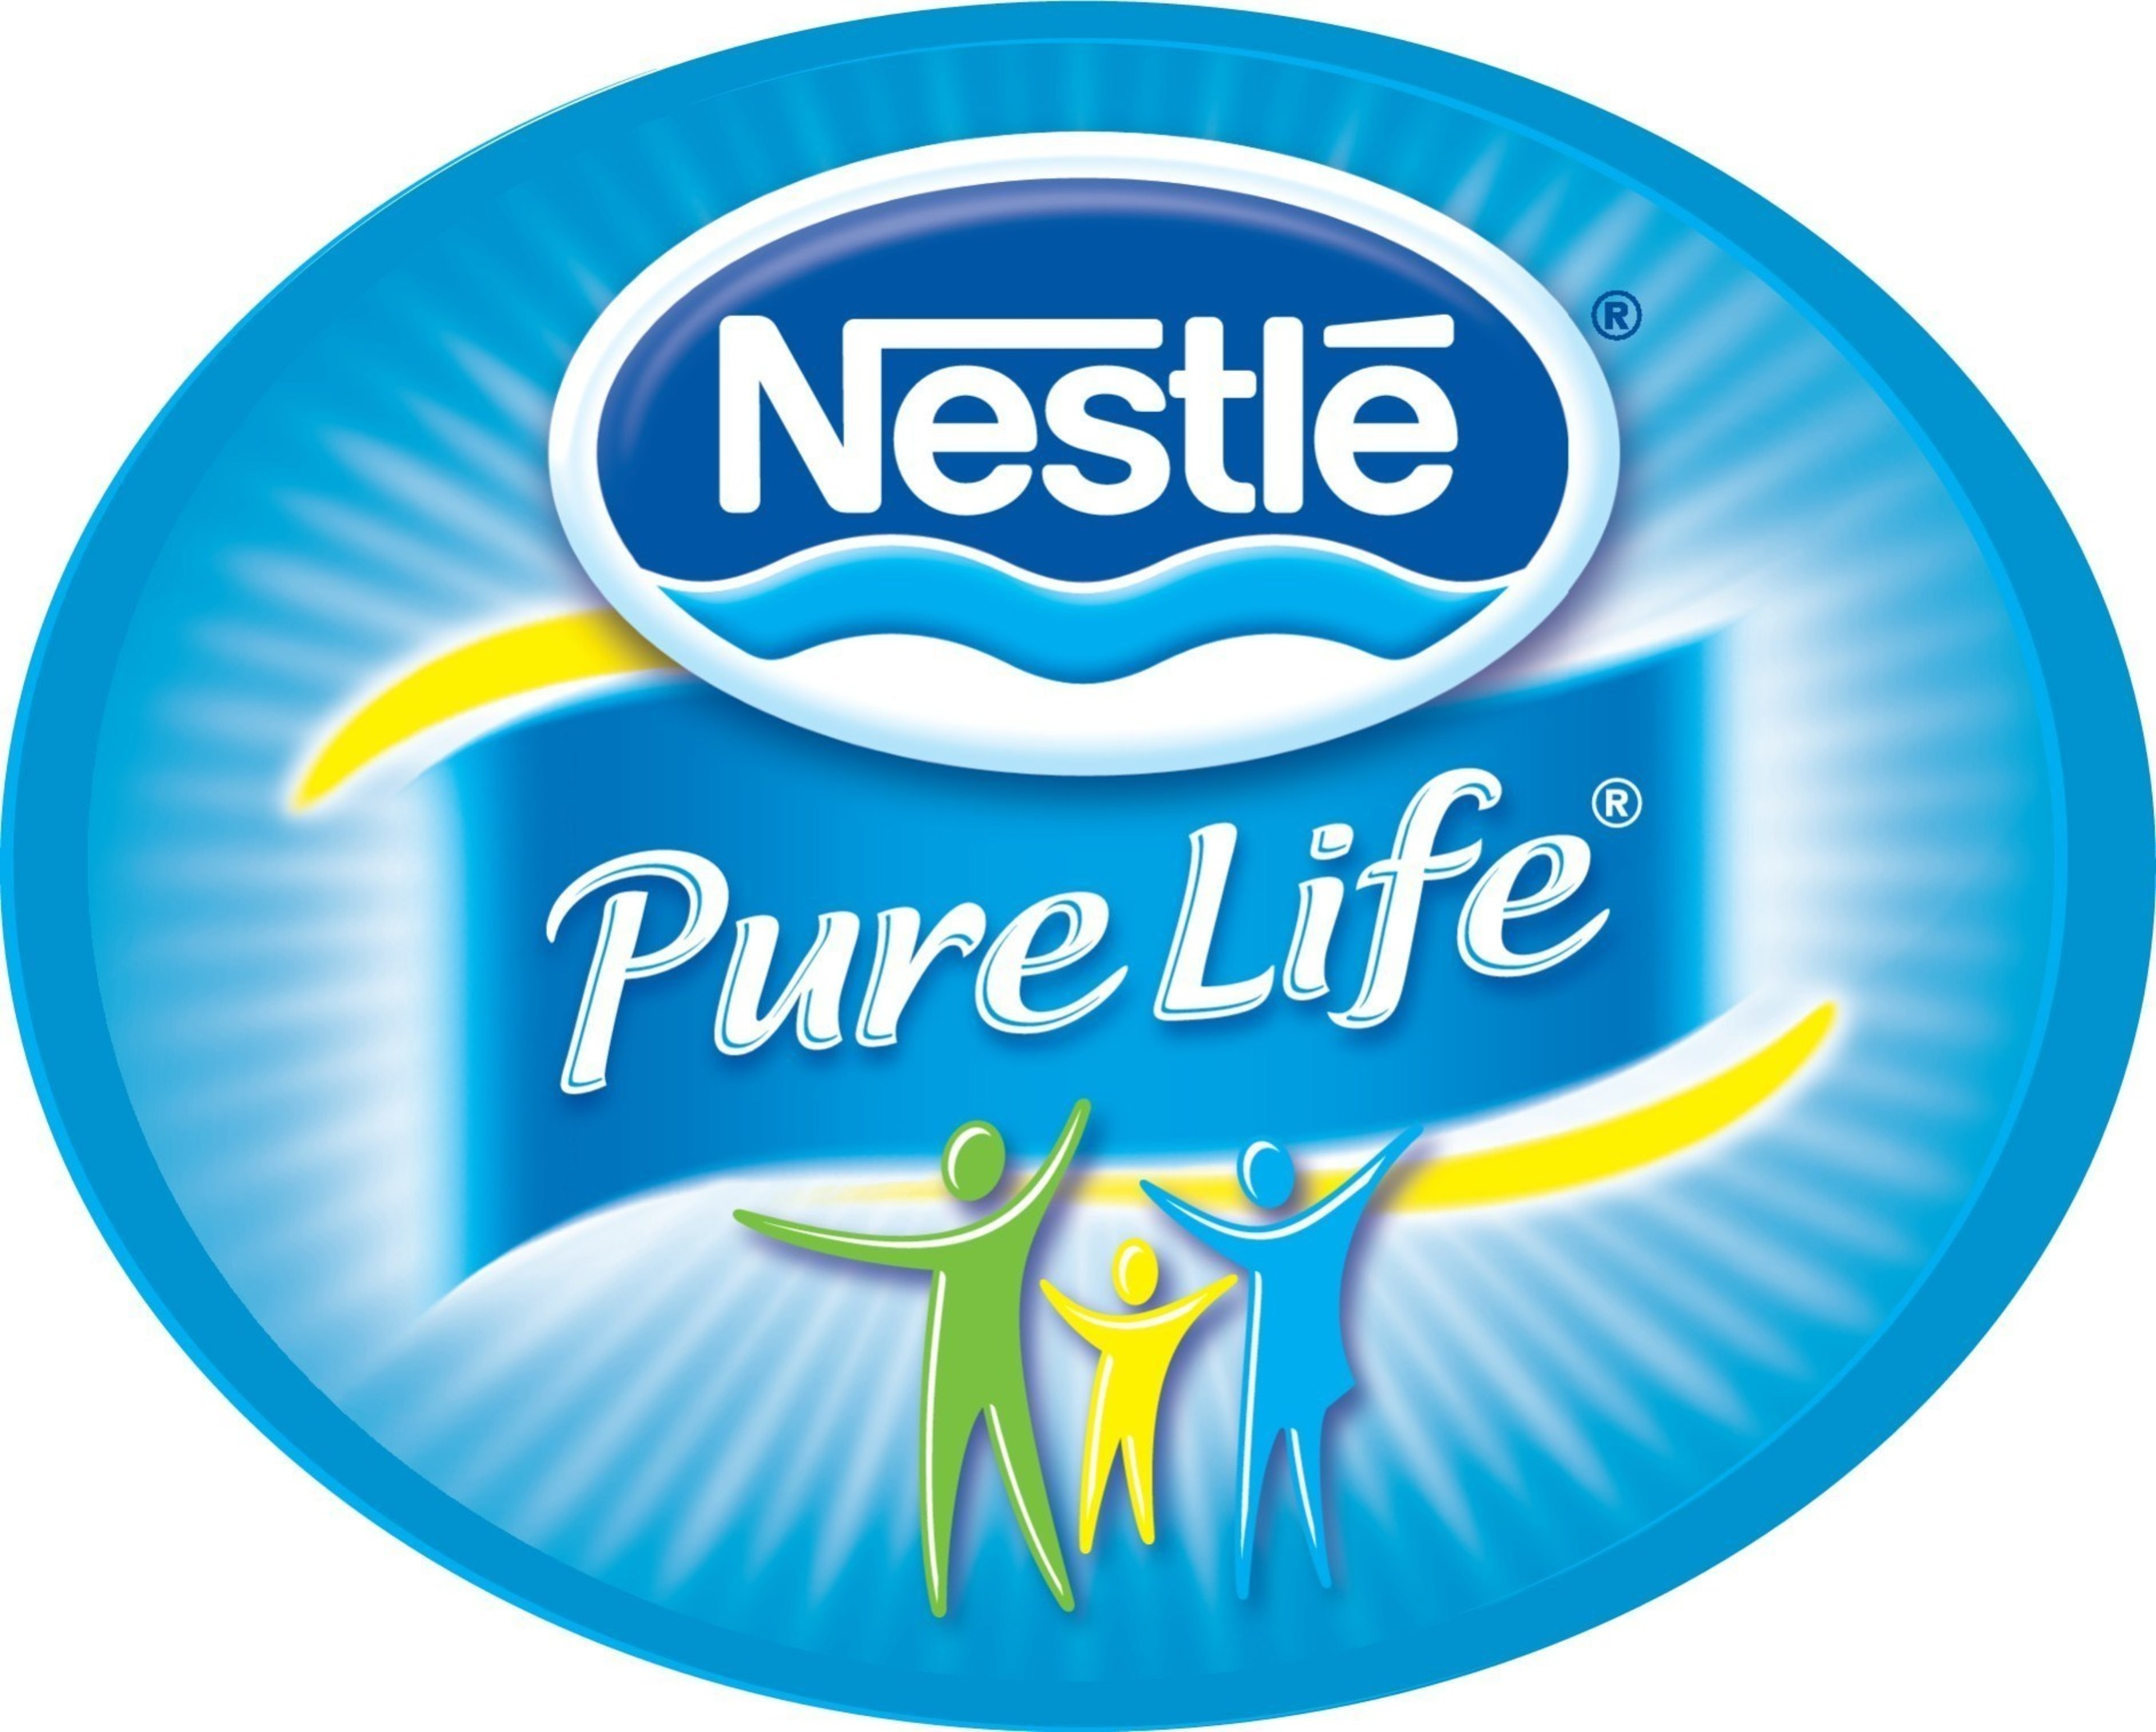 Nestle health science logo clipart banner library NESTLÉ® PURE LIFE® Kicks off The Ripple Effect Movement to ... banner library